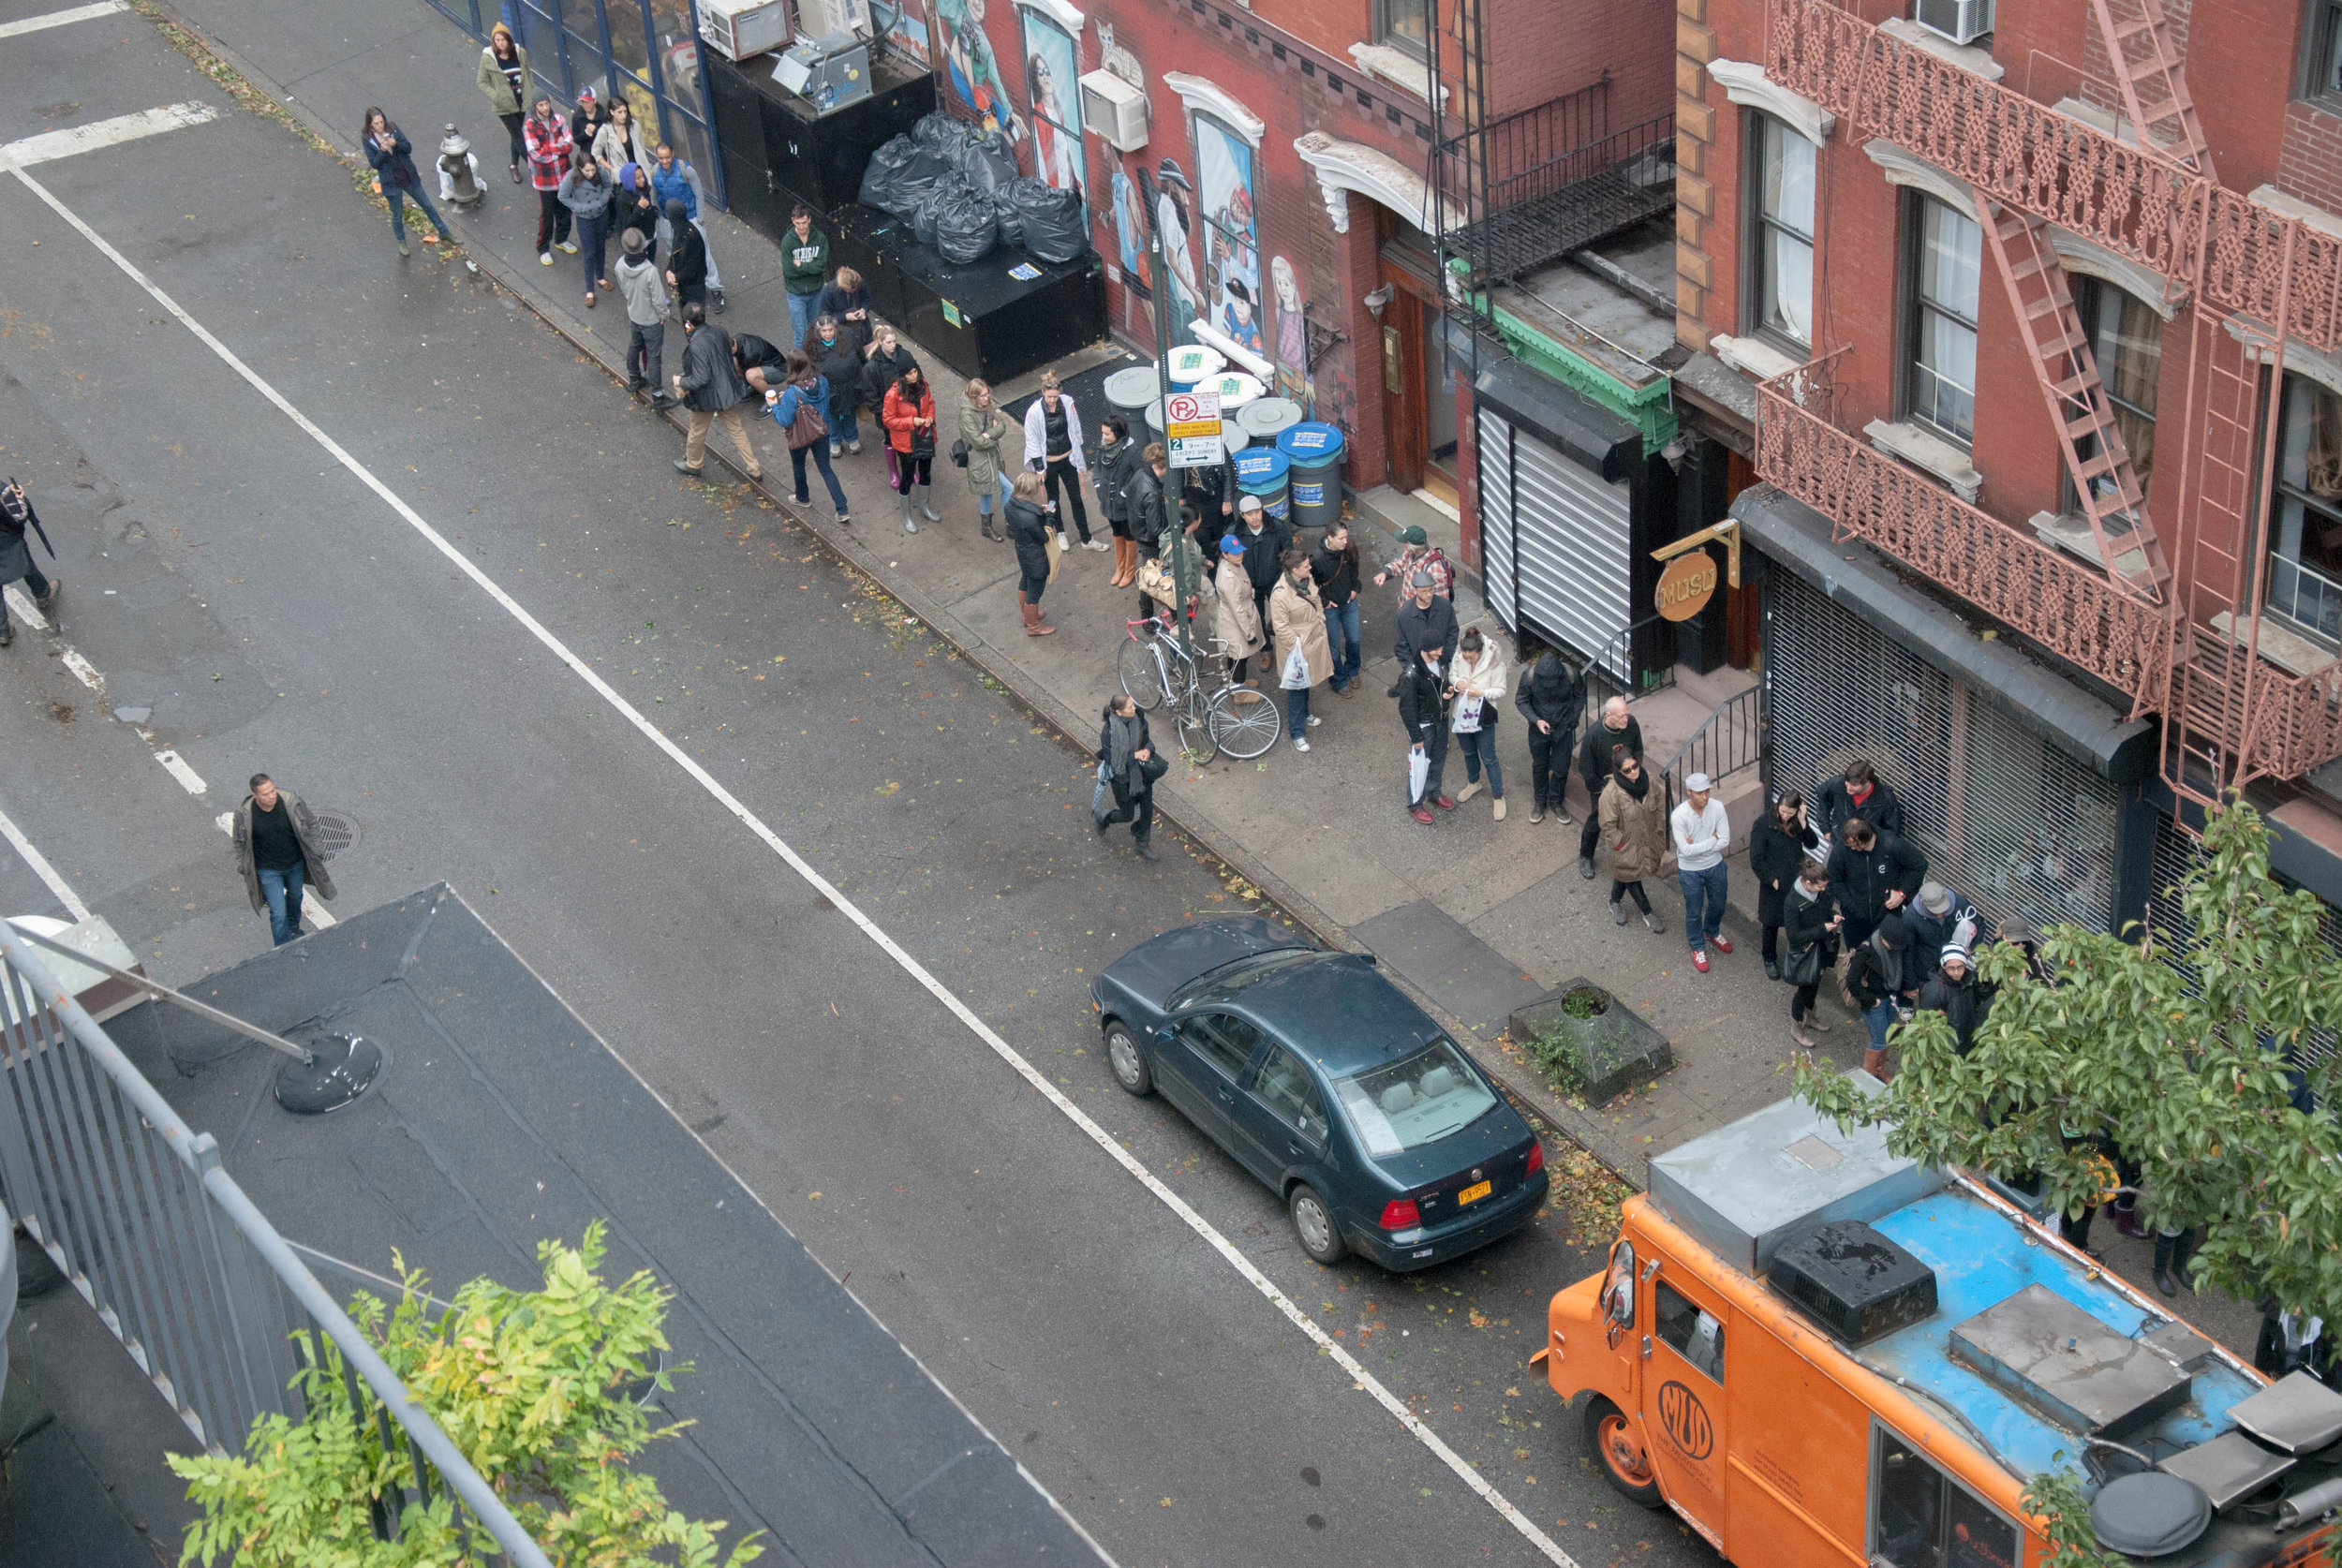 After Hurricane Sandy in 2012, the Mud Truck came to the rescue and the line went around the block.